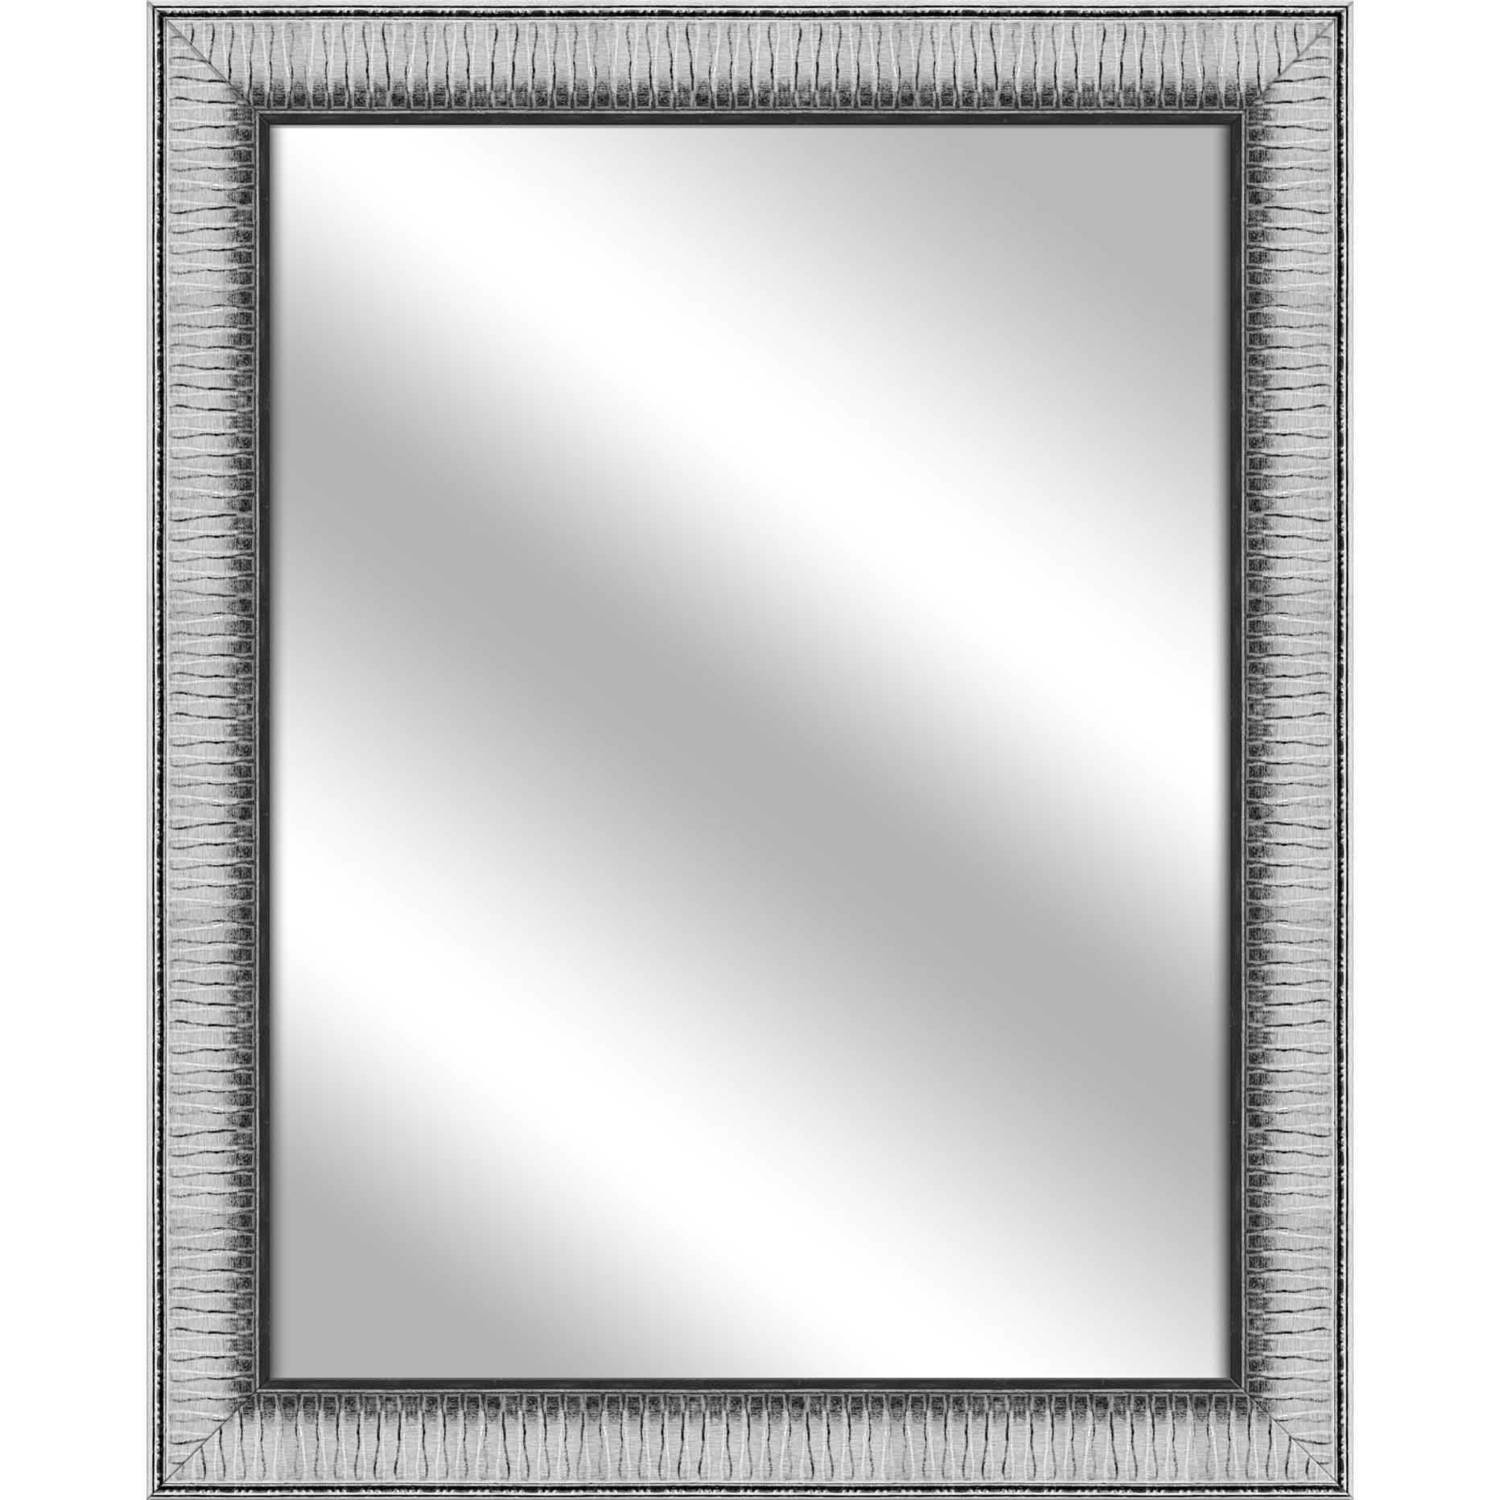 Vanity Mirror, Stainless Silver, 26.375x32.375 by PTM Images